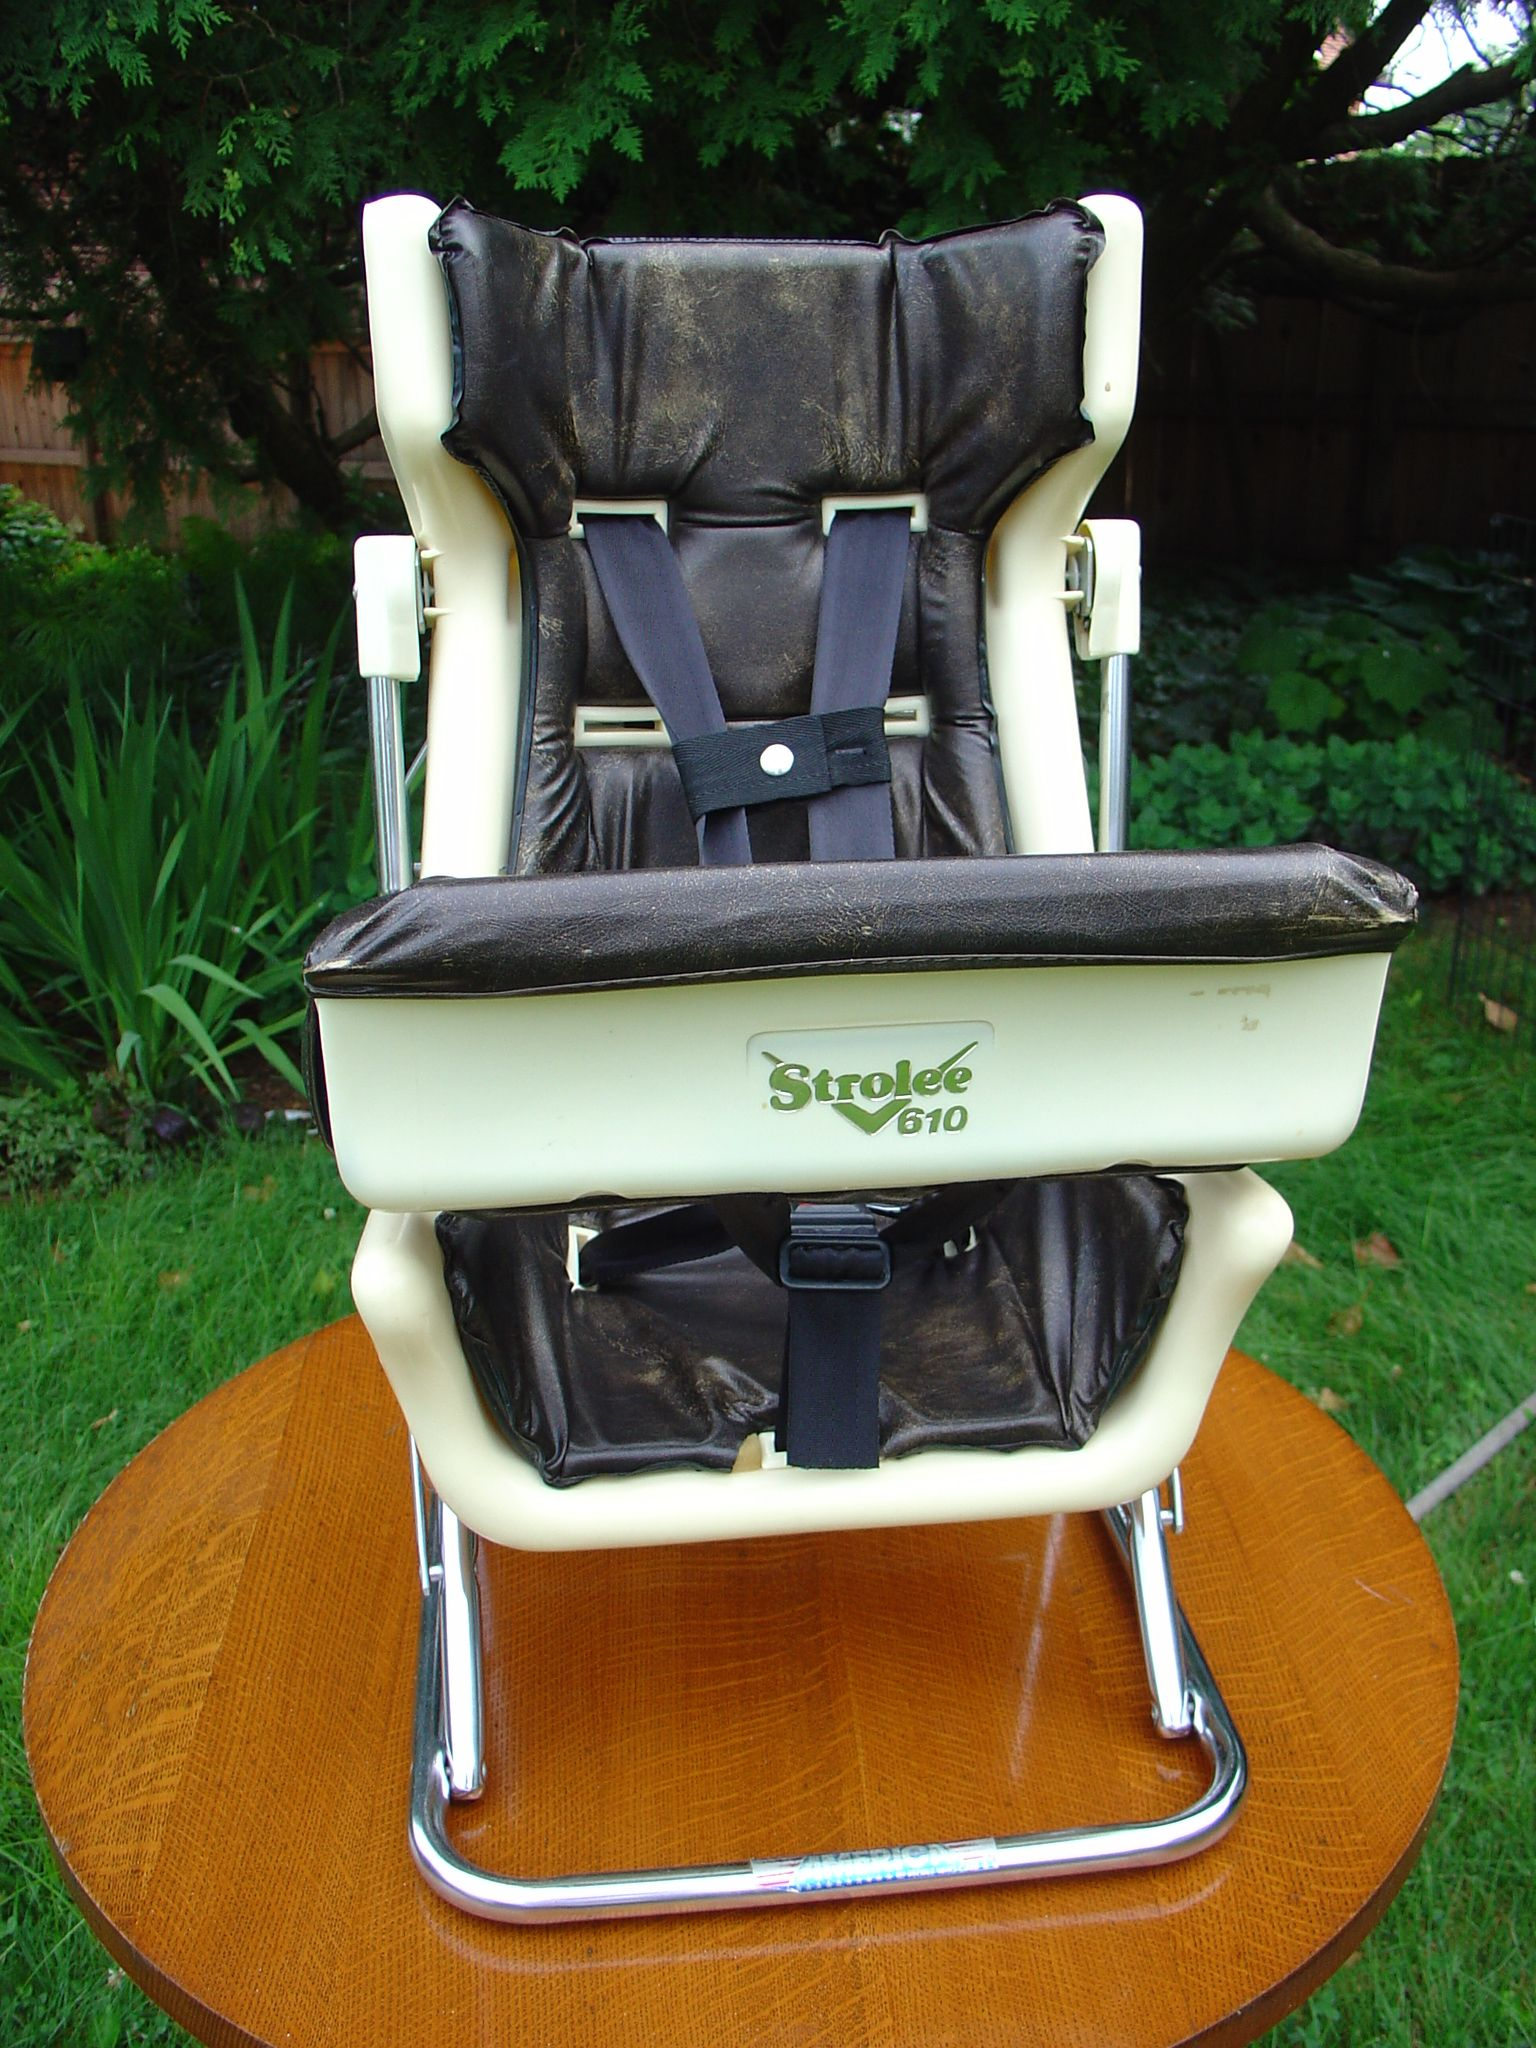 Babies Car Seat Covers Strolee 610 1985 Mint Vintage Baby Gear Baby Car